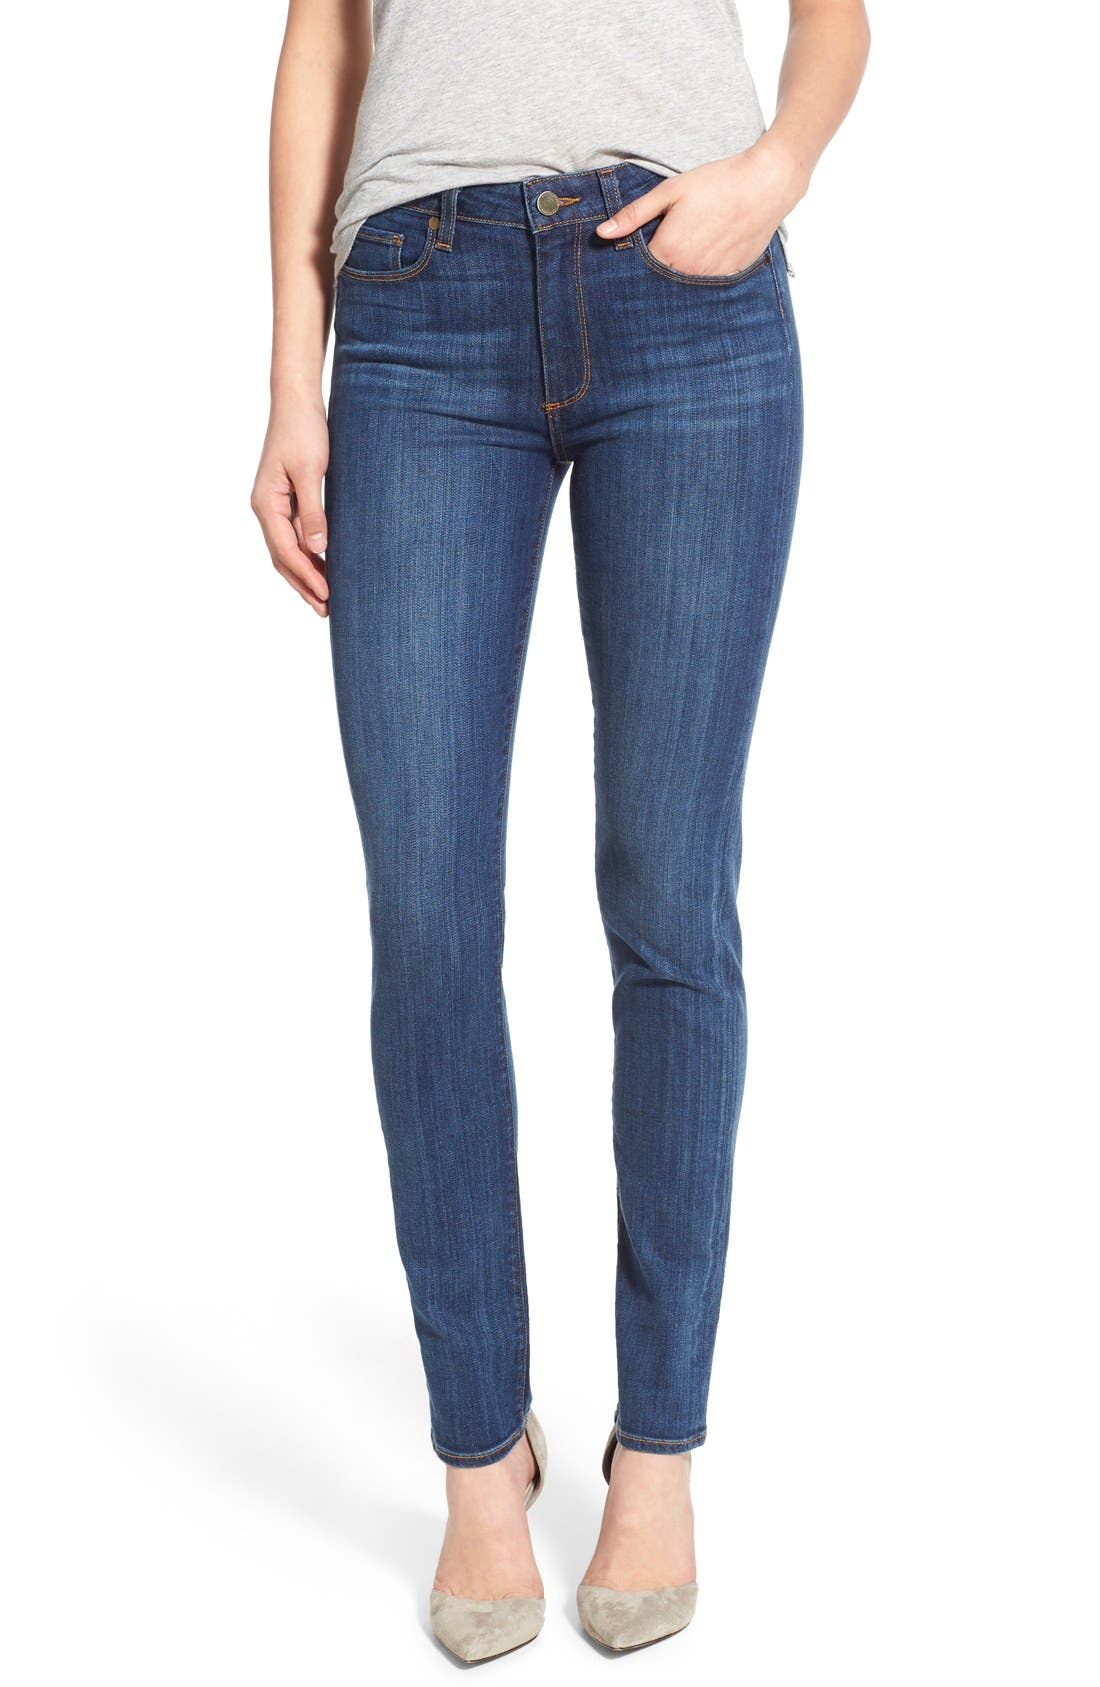 Alternate Image 1 Selected - Paige Denim 'Hoxton' High Rise Skinny Jeans (Arya)